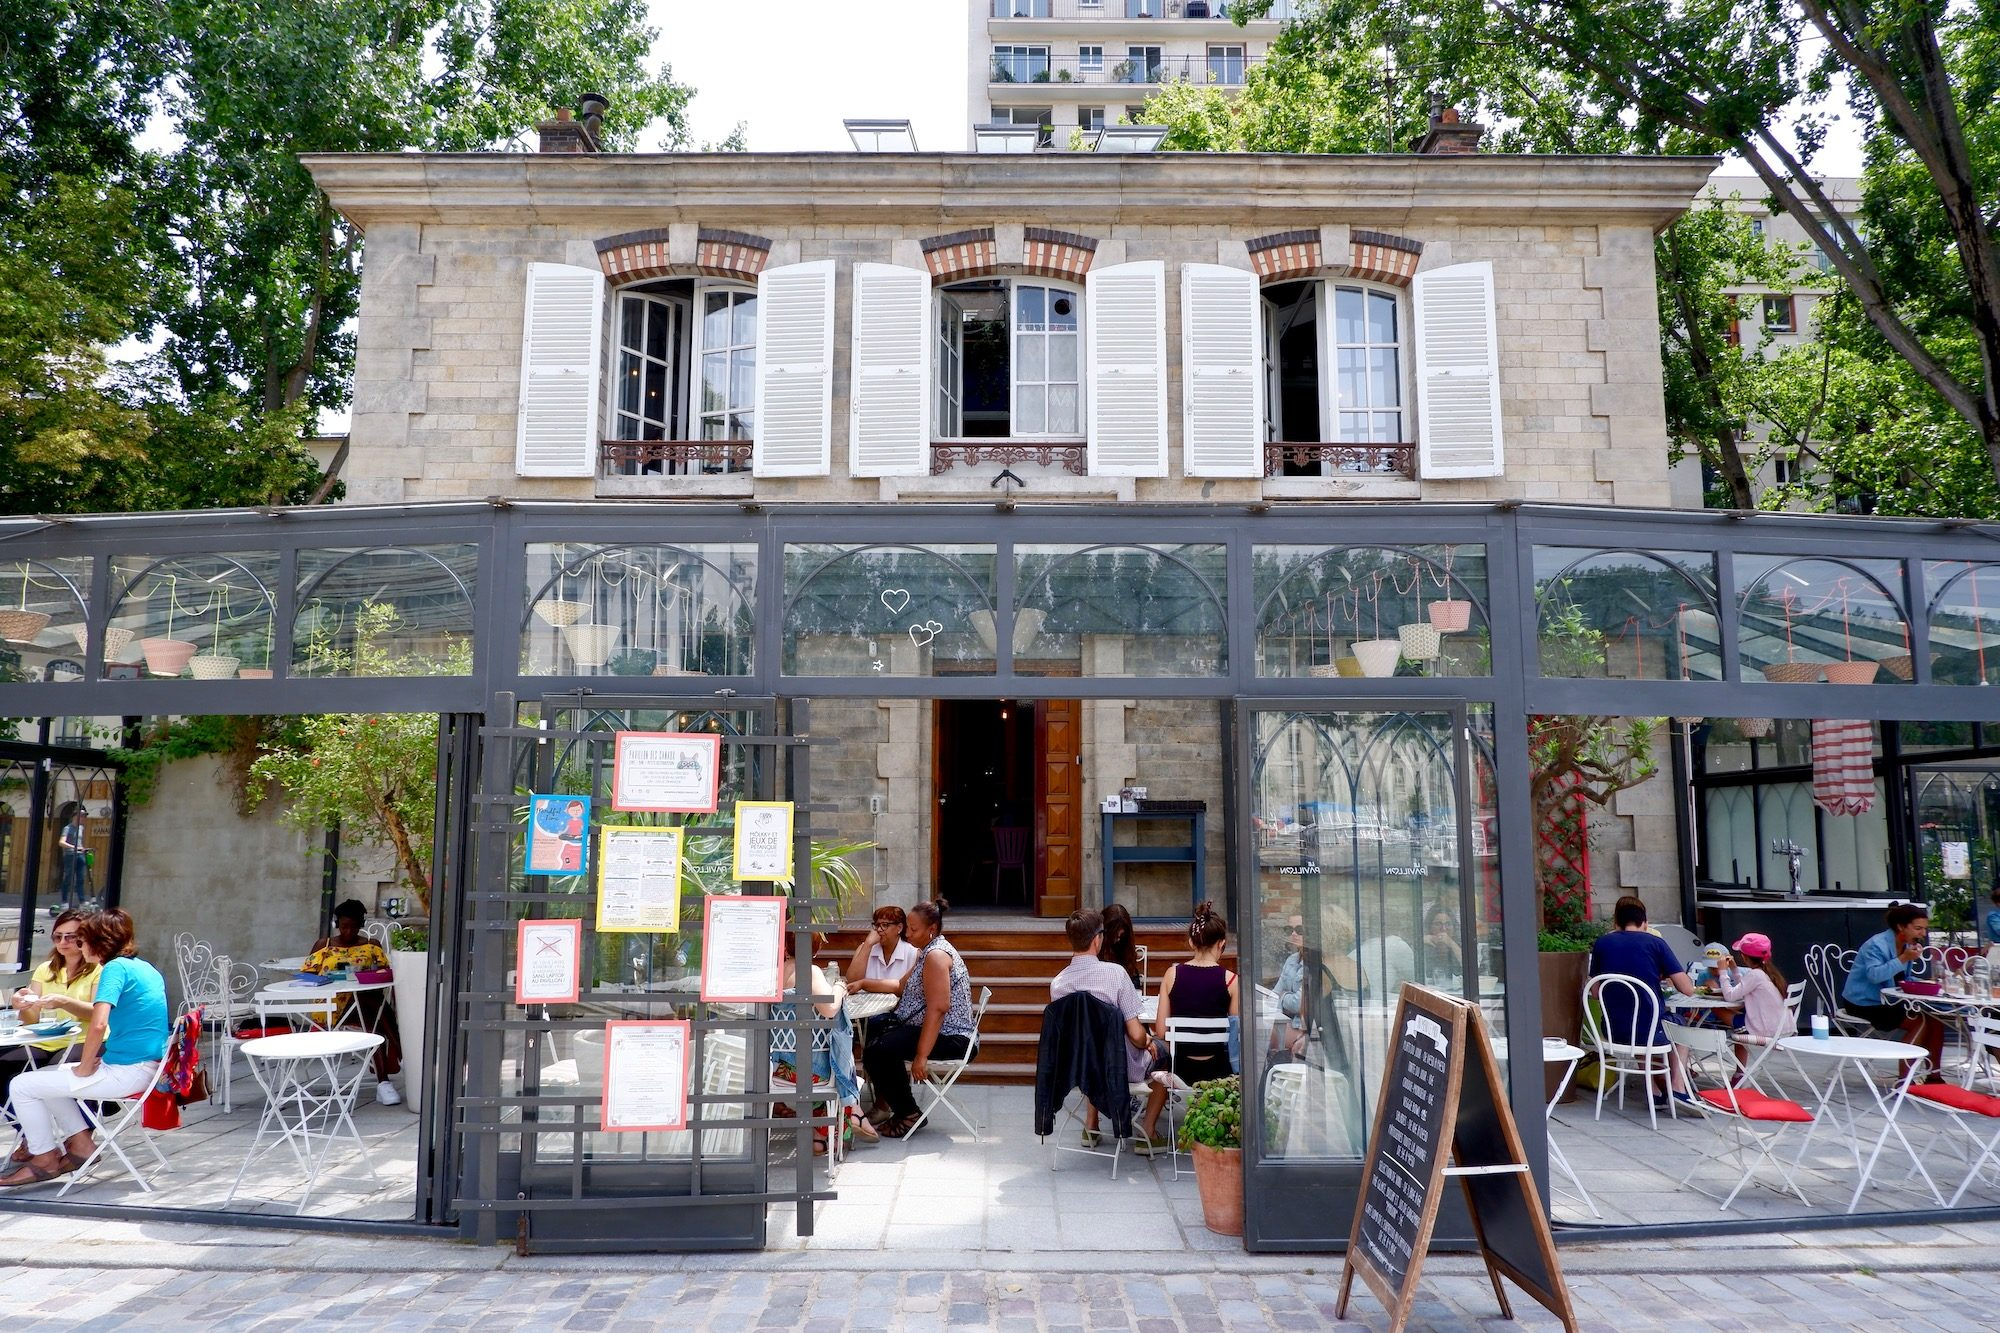 Pavillon des Canaux is also a local favorite located on the Canal de l'Ourcq, and serves delicious cakes and salads as well as cocktails, beer and wine.